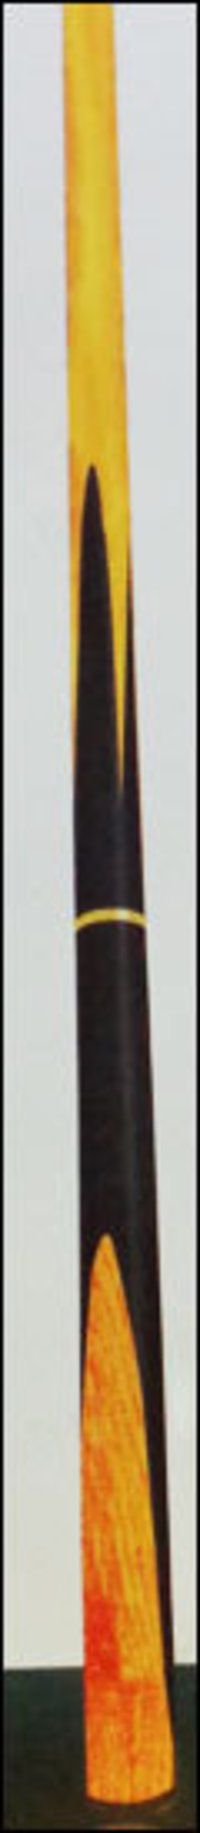 High Quality Snooker Cues